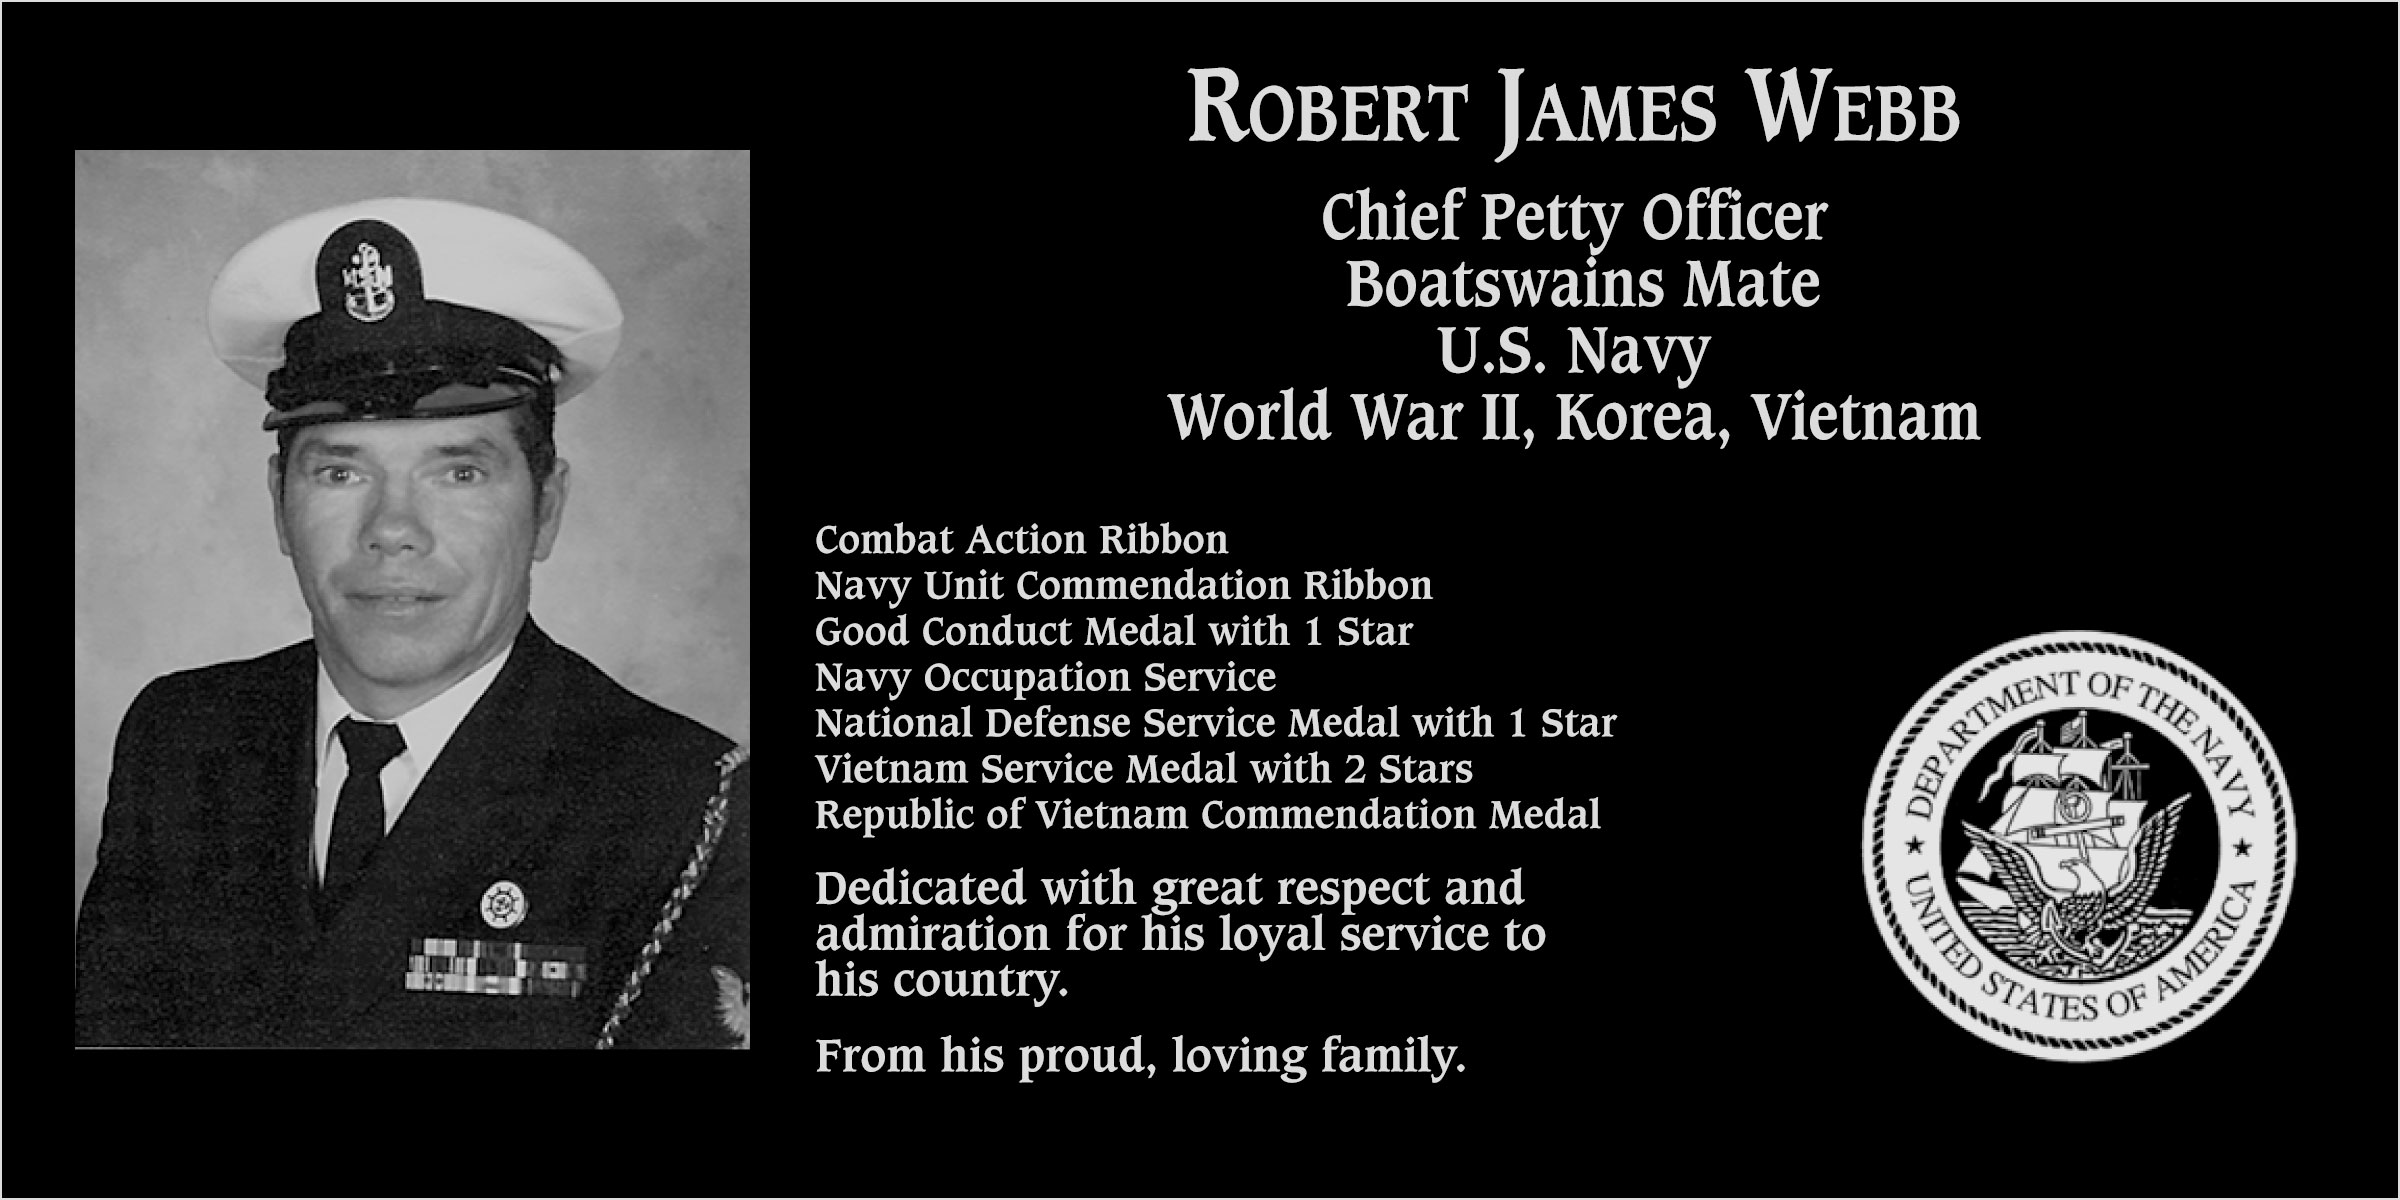 Robert James Webb